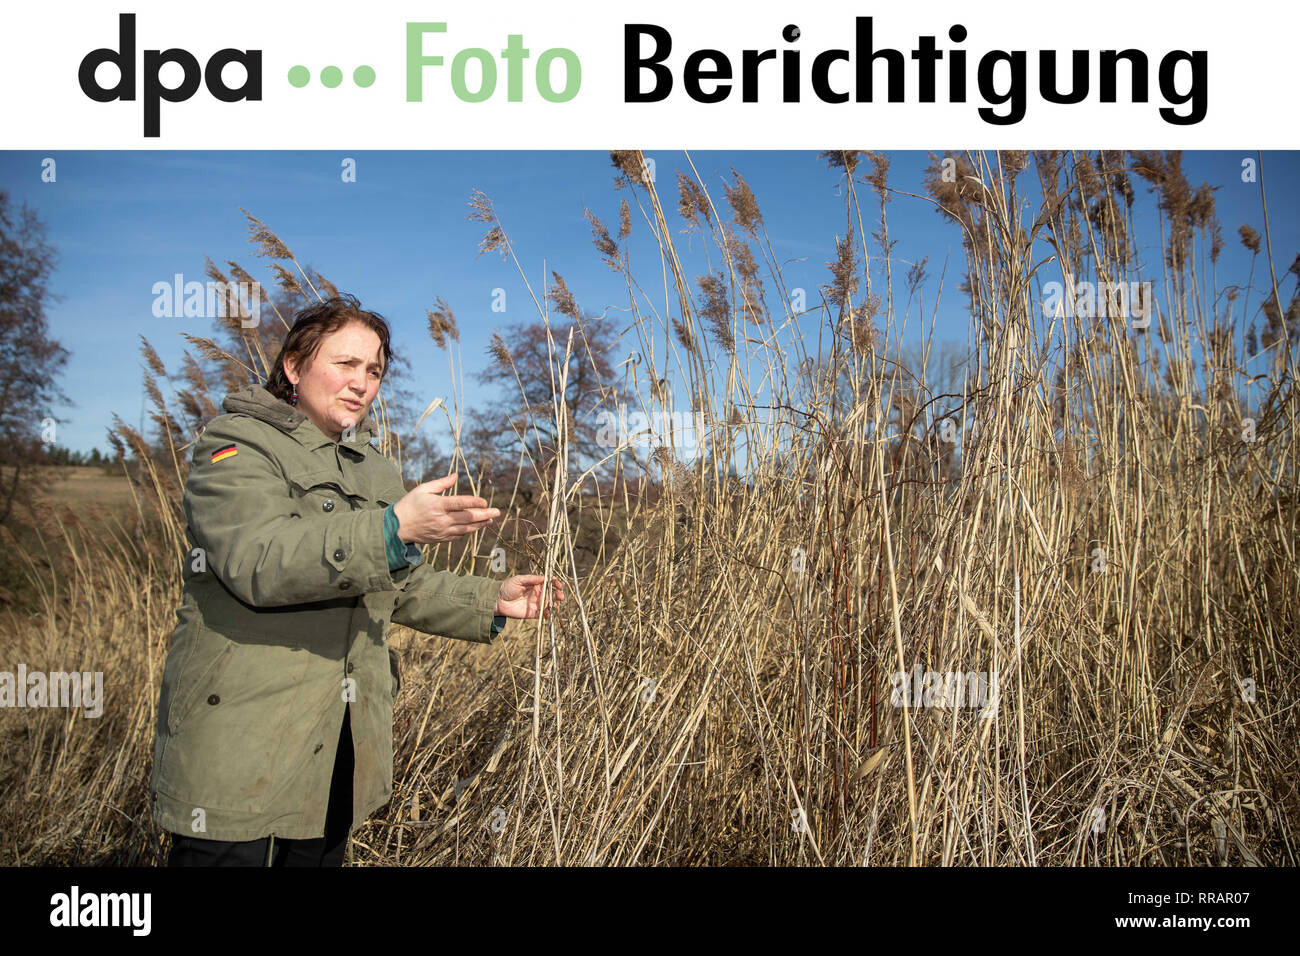 23 February 2019, Bavaria, Heilbronn: Dear customers, the first name of the protagonist Isabella Hirsch was misspelled in the five photos sent to the correspondent report 'Bio oder konventionell - Was hilft dem Artenschutz mehr' (Organic or conventional - what helps species protection more) of 24.02.2019. The photo will be sent to you again with the corrected text. We apologize for the mistake. Yours sincerely, Your dpa photo editor - Tel. 030 2852 31515 Photo: Daniel Karmann/dpa - Stock Image